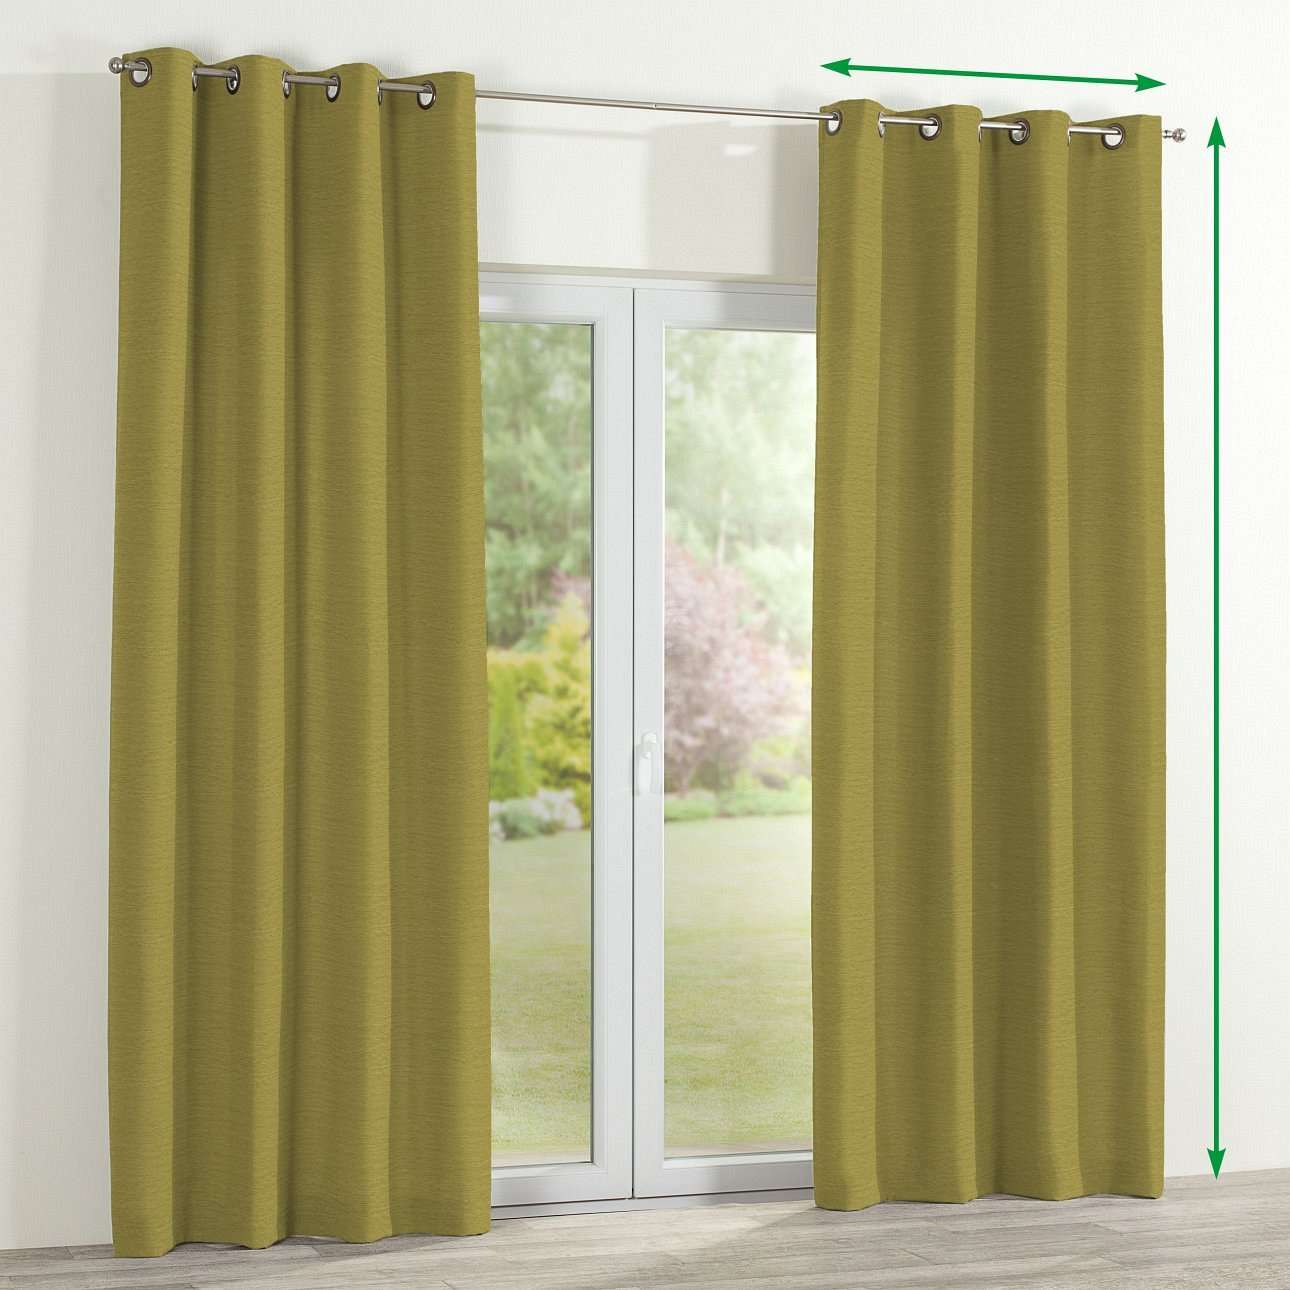 Eyelet curtains in collection Chenille, fabric: 160-47